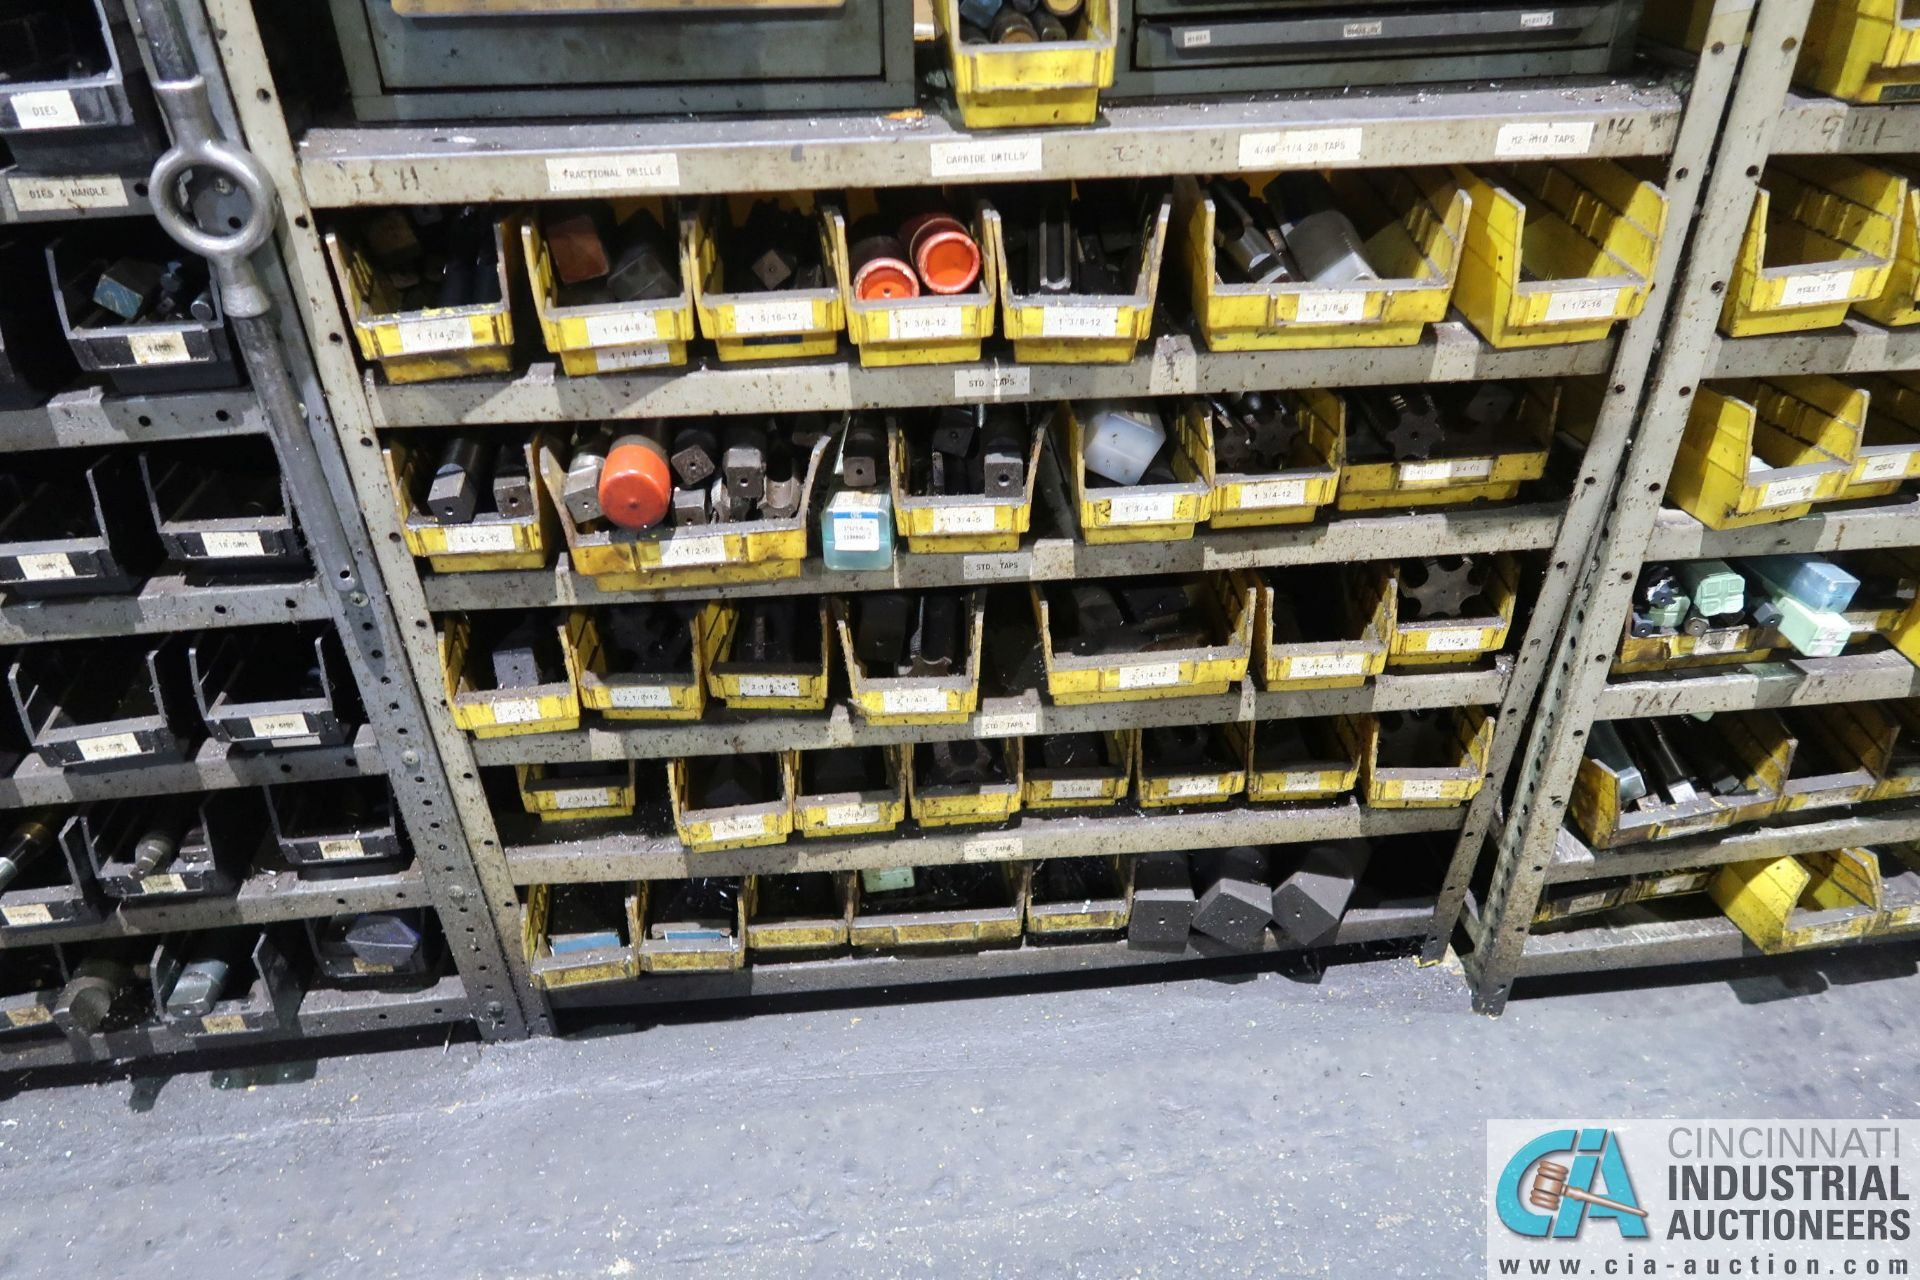 (LOT) HUGE ASSORTMENT TAPS AND DRILL INDEX CABINETS WITH SHELVING - Image 4 of 4